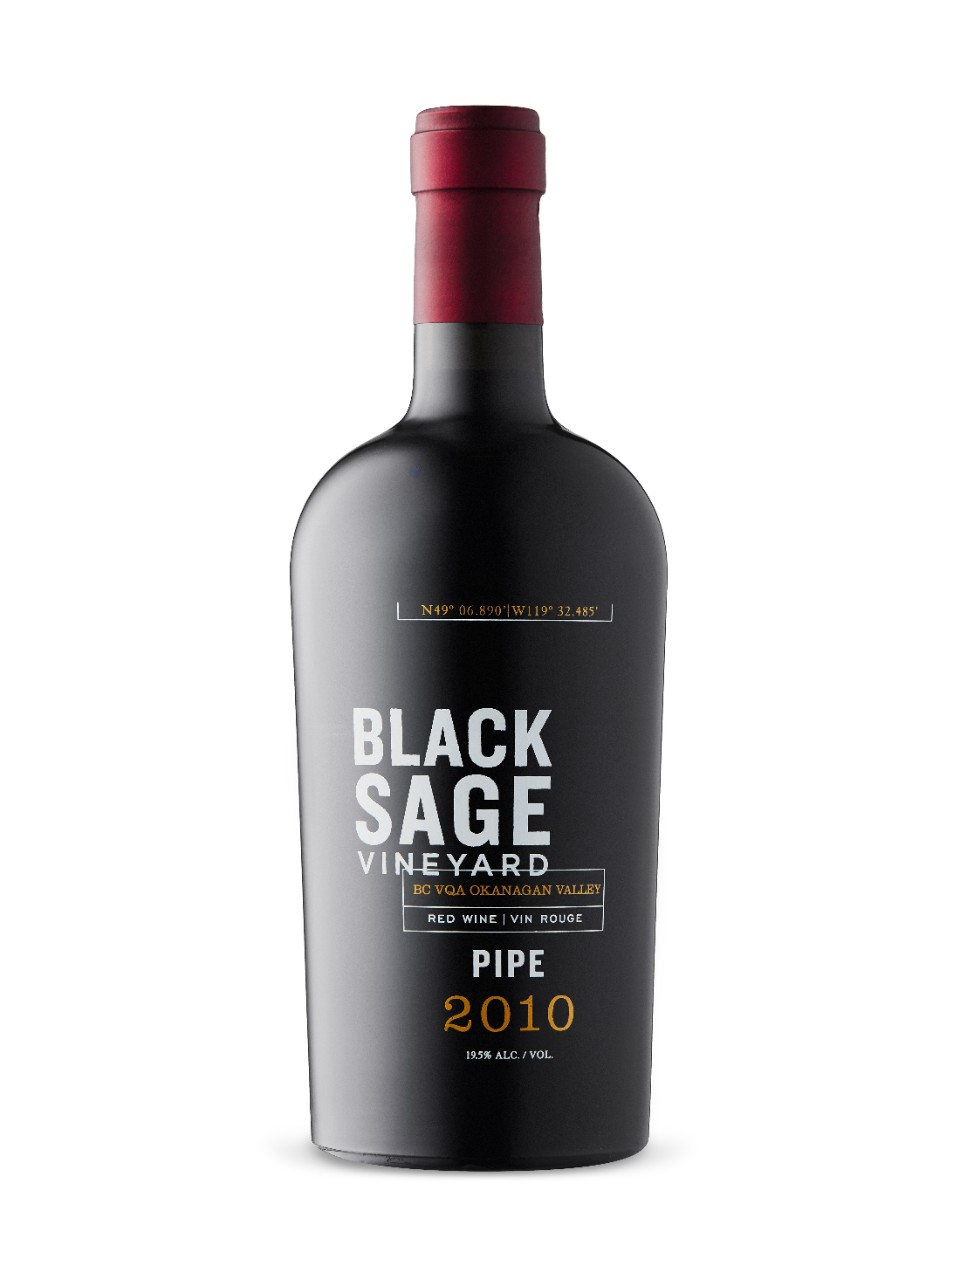 Image for Black Sage Vineyard Pipe Port-Style 2010 from LCBO